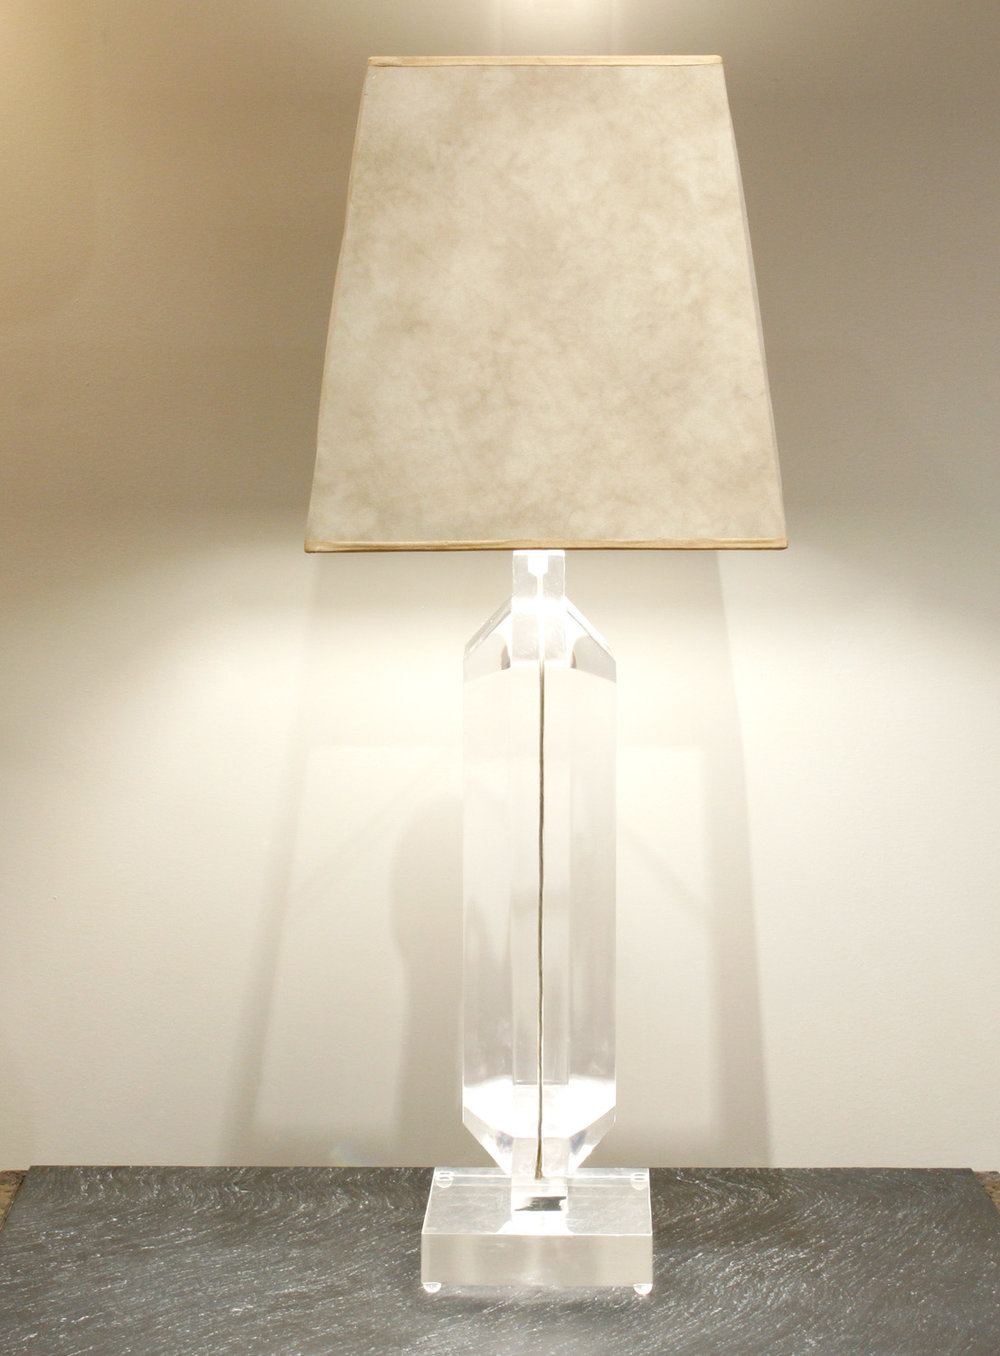 Prismatiques 35 lucite block tablelamp130 hires side.jpg